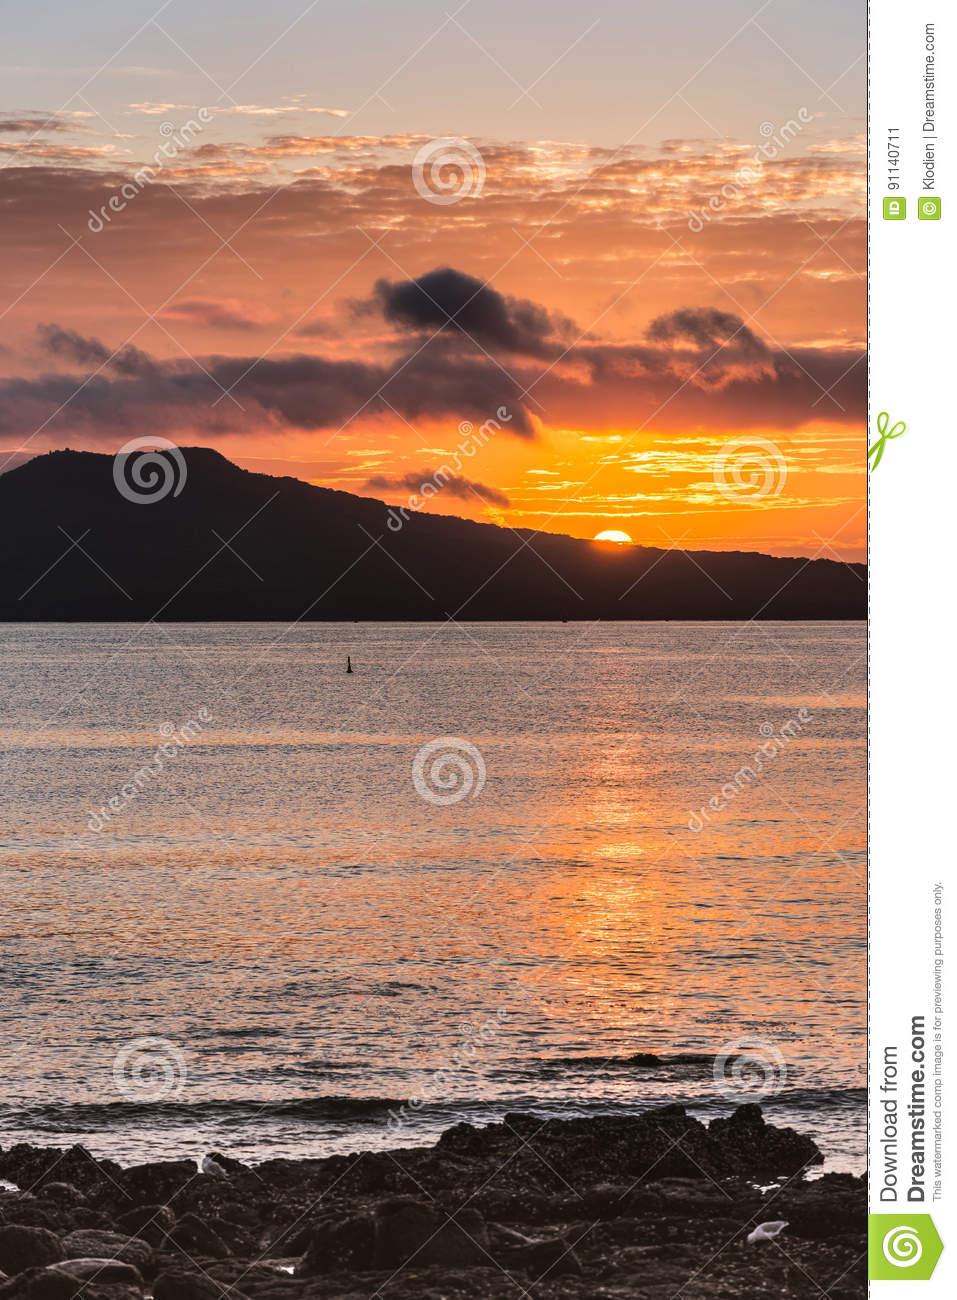 Sunrise shows half sun over Rangitoto Volcano near Auckland.